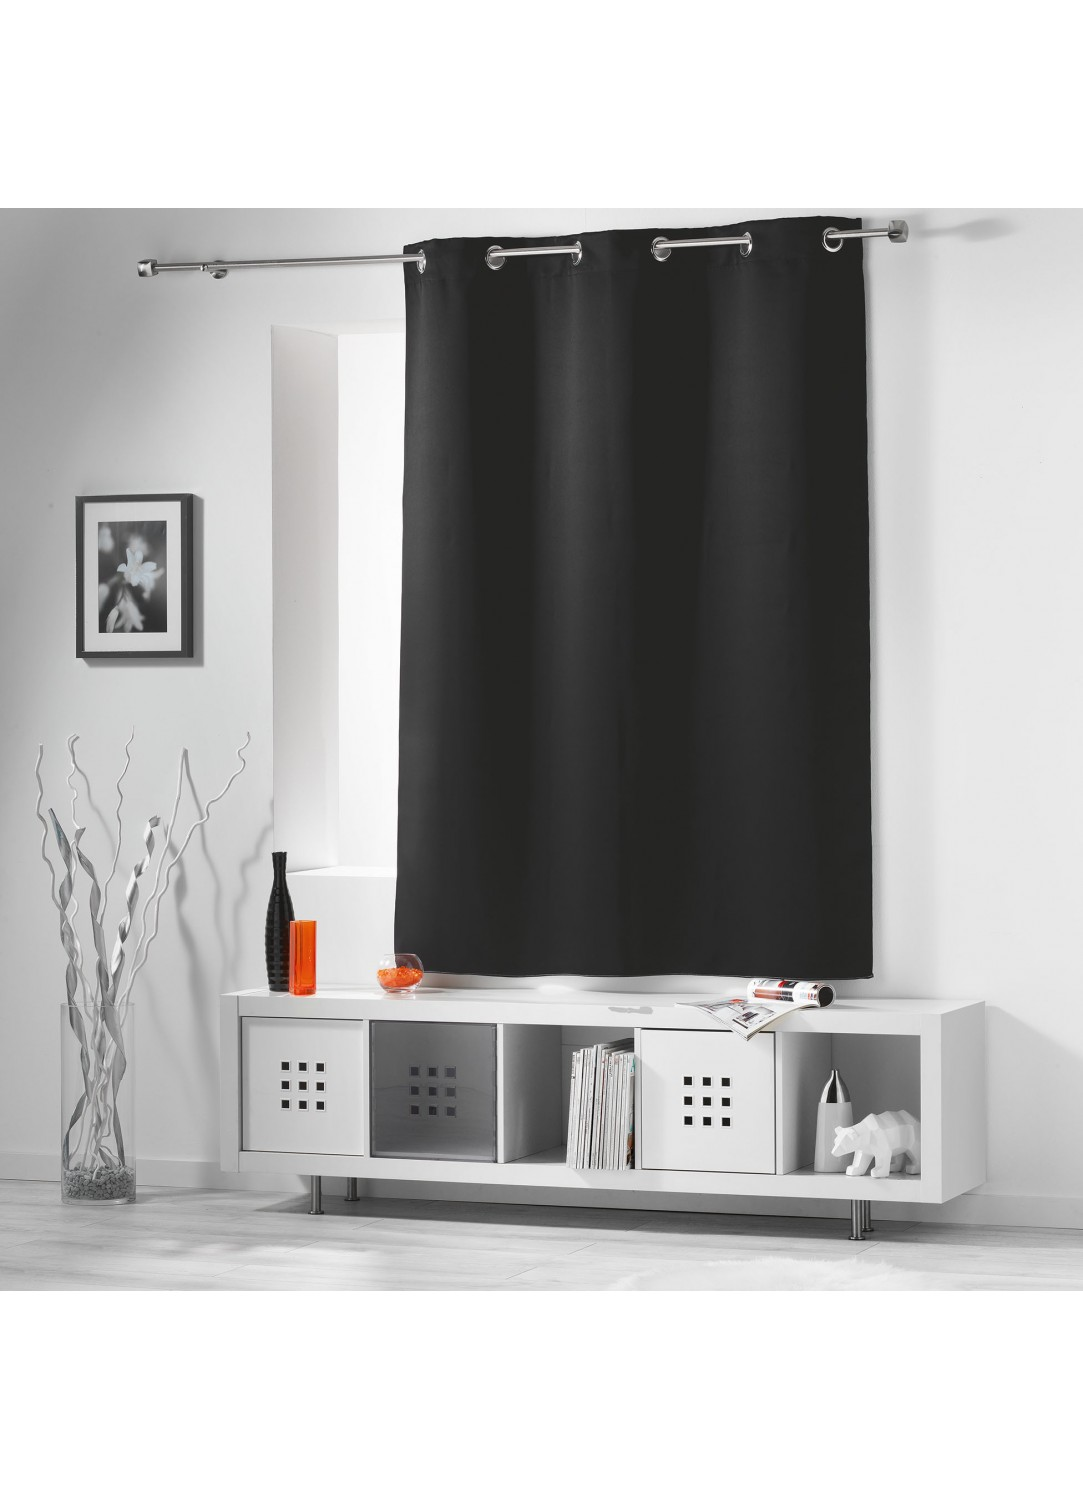 rideau occultant radiateur petite hauteur noir drag e. Black Bedroom Furniture Sets. Home Design Ideas